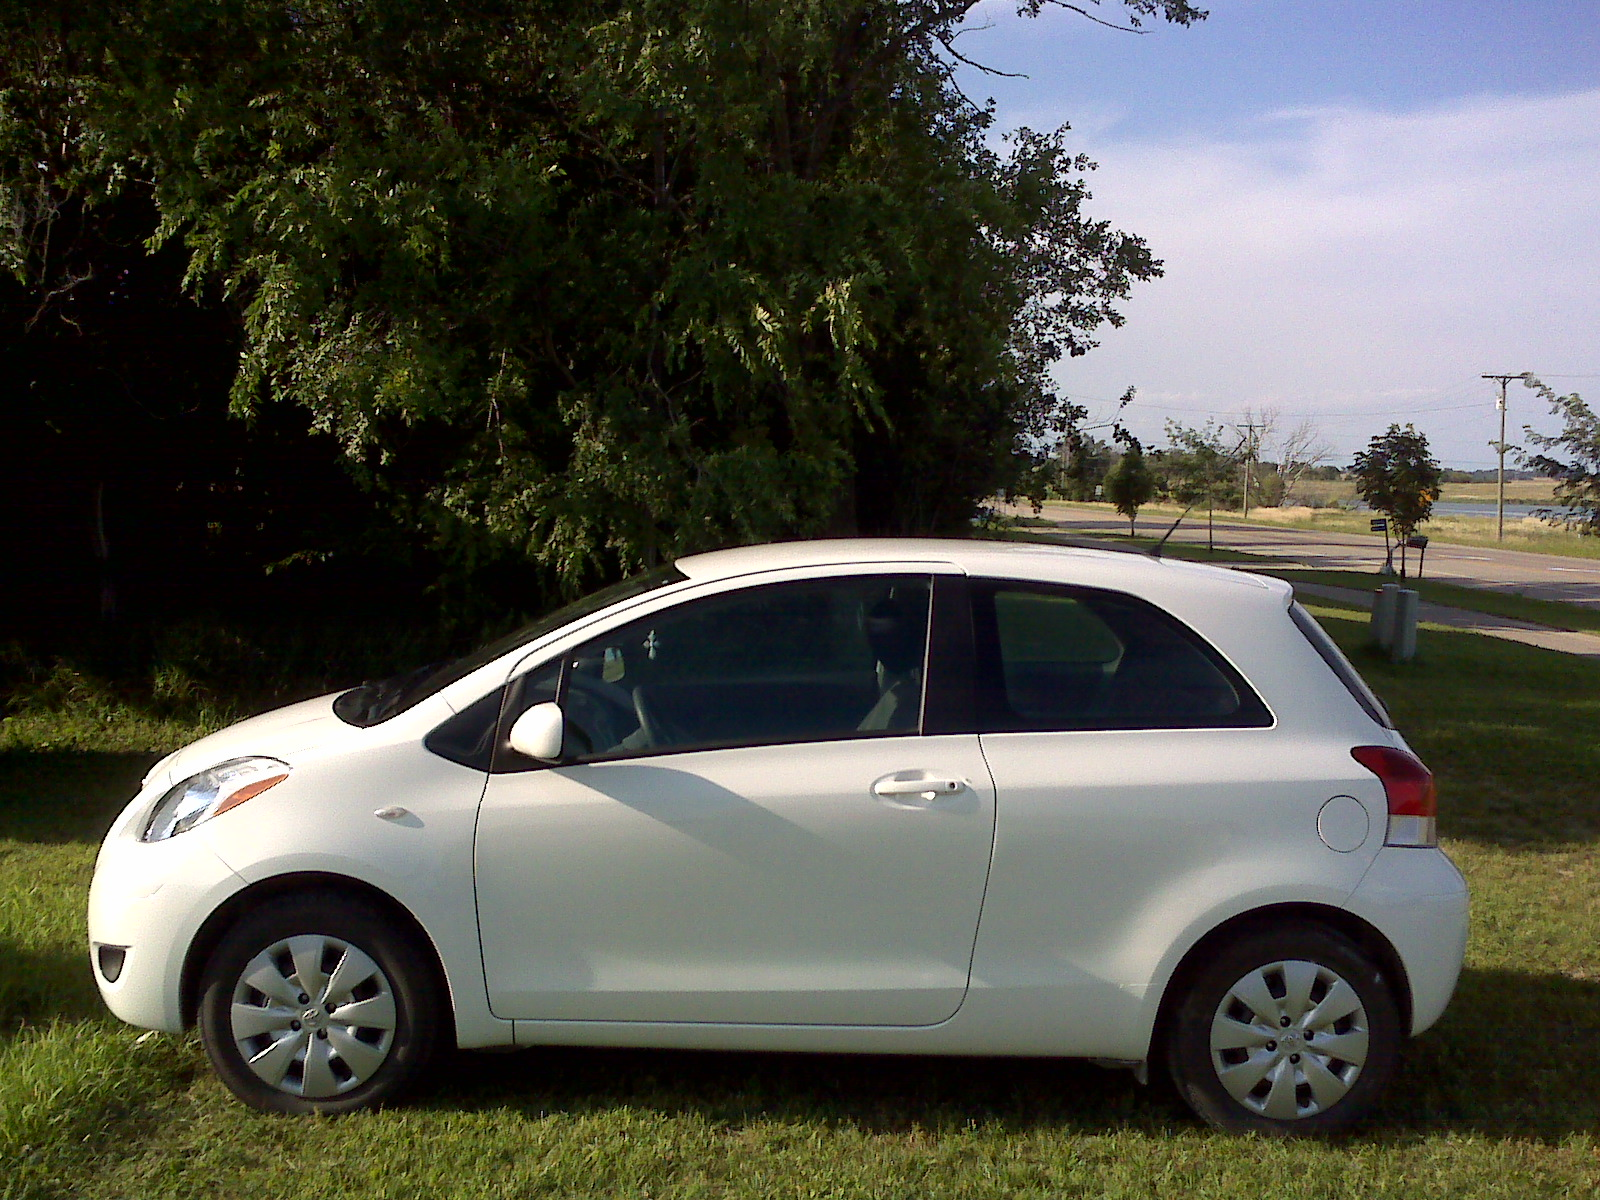 Photograph of a white 2010 2-door Toyota Yaris hatchback.